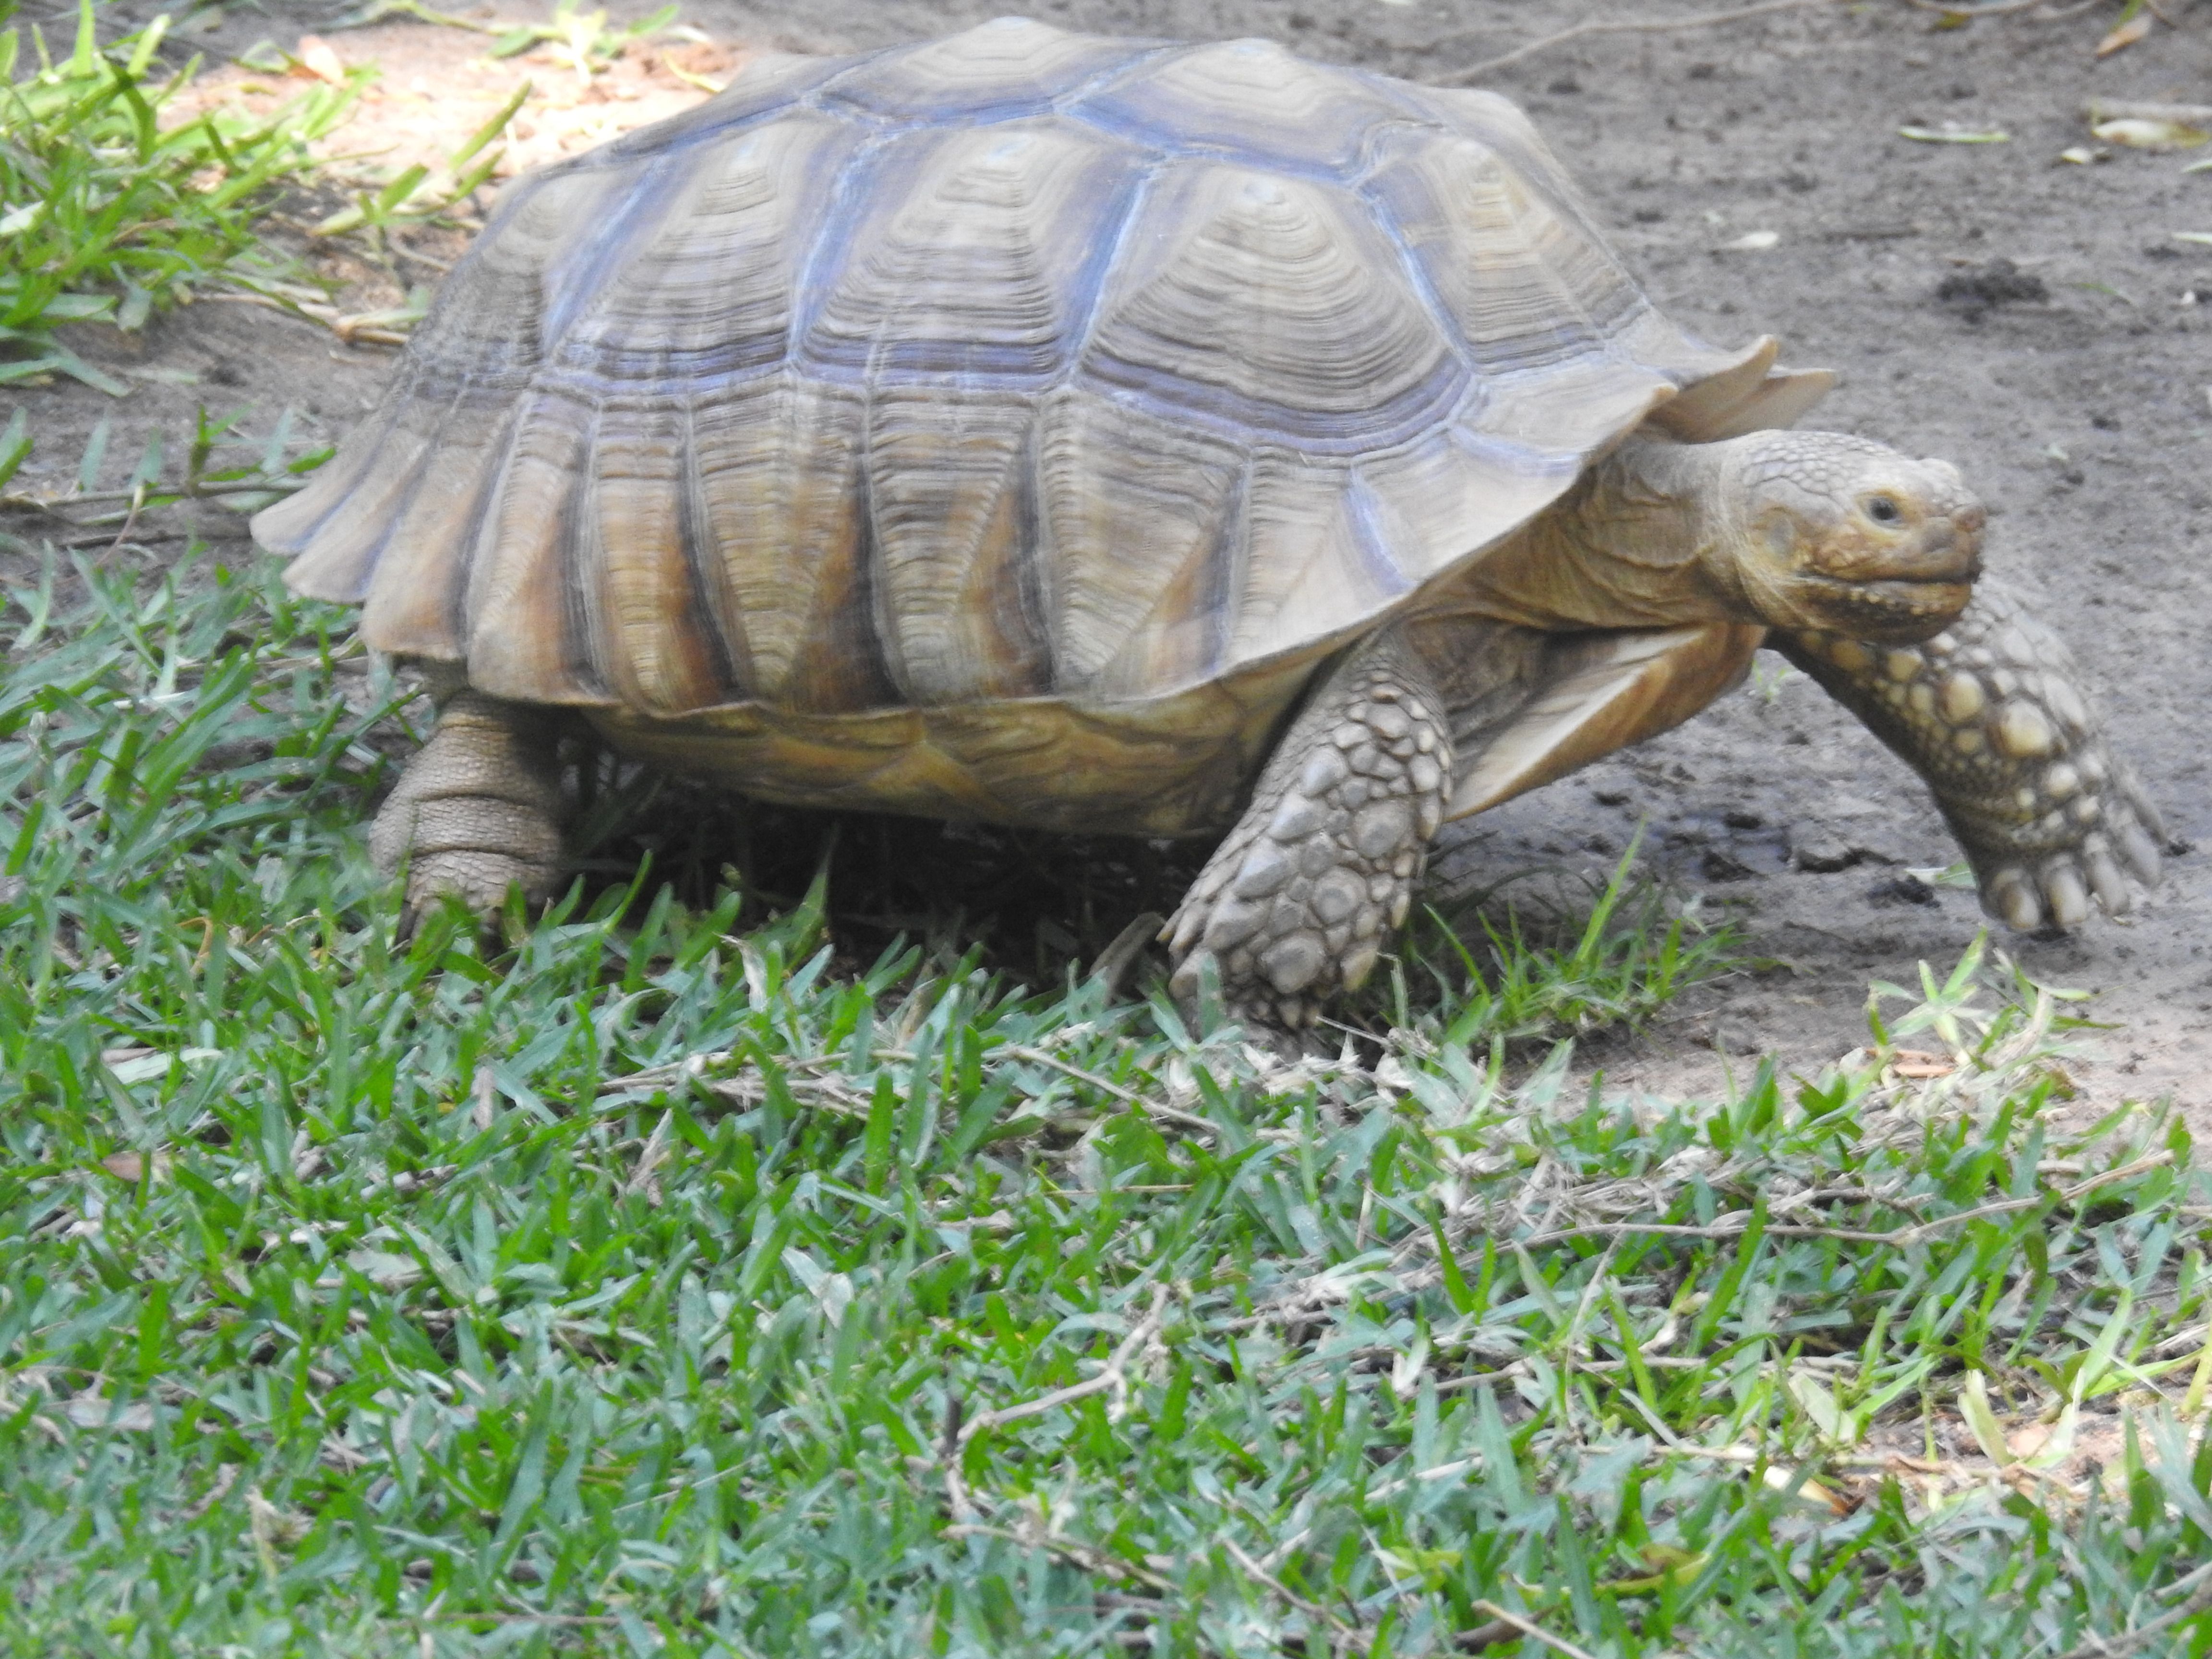 Giant Aldabra Tortoise- vulnerable species from the Seychelles, hatched at the Zoo in 1976